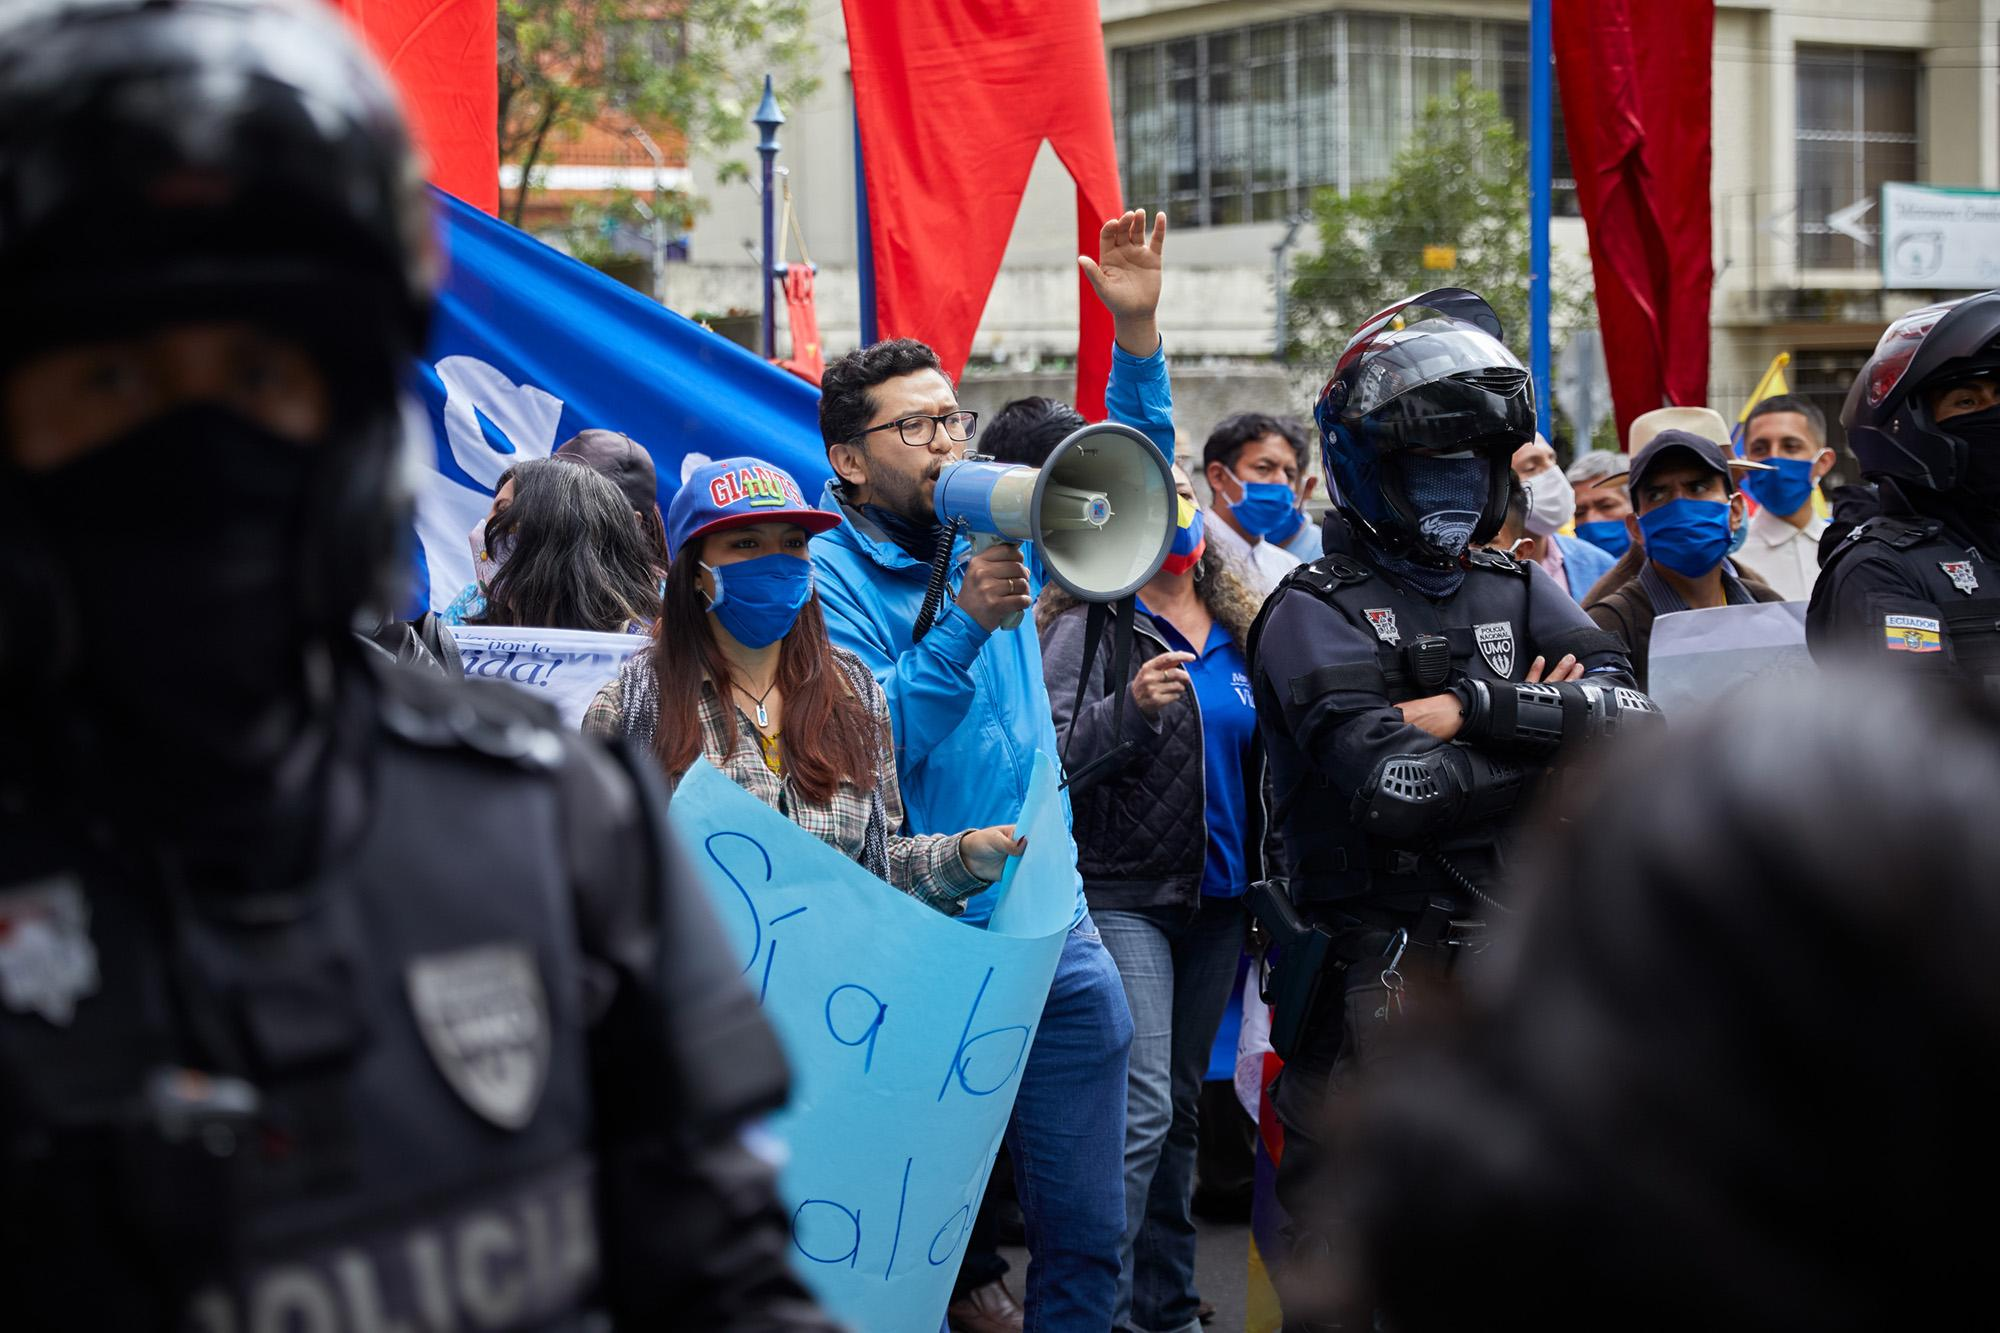 """Anti-rights groups, called """"pro-life"""", led mostly by men, are guarded by police as they pray and shout at feminist groups demanding decriminalization of abortion for rape. April 28, 2021, Quito, Ecuador."""